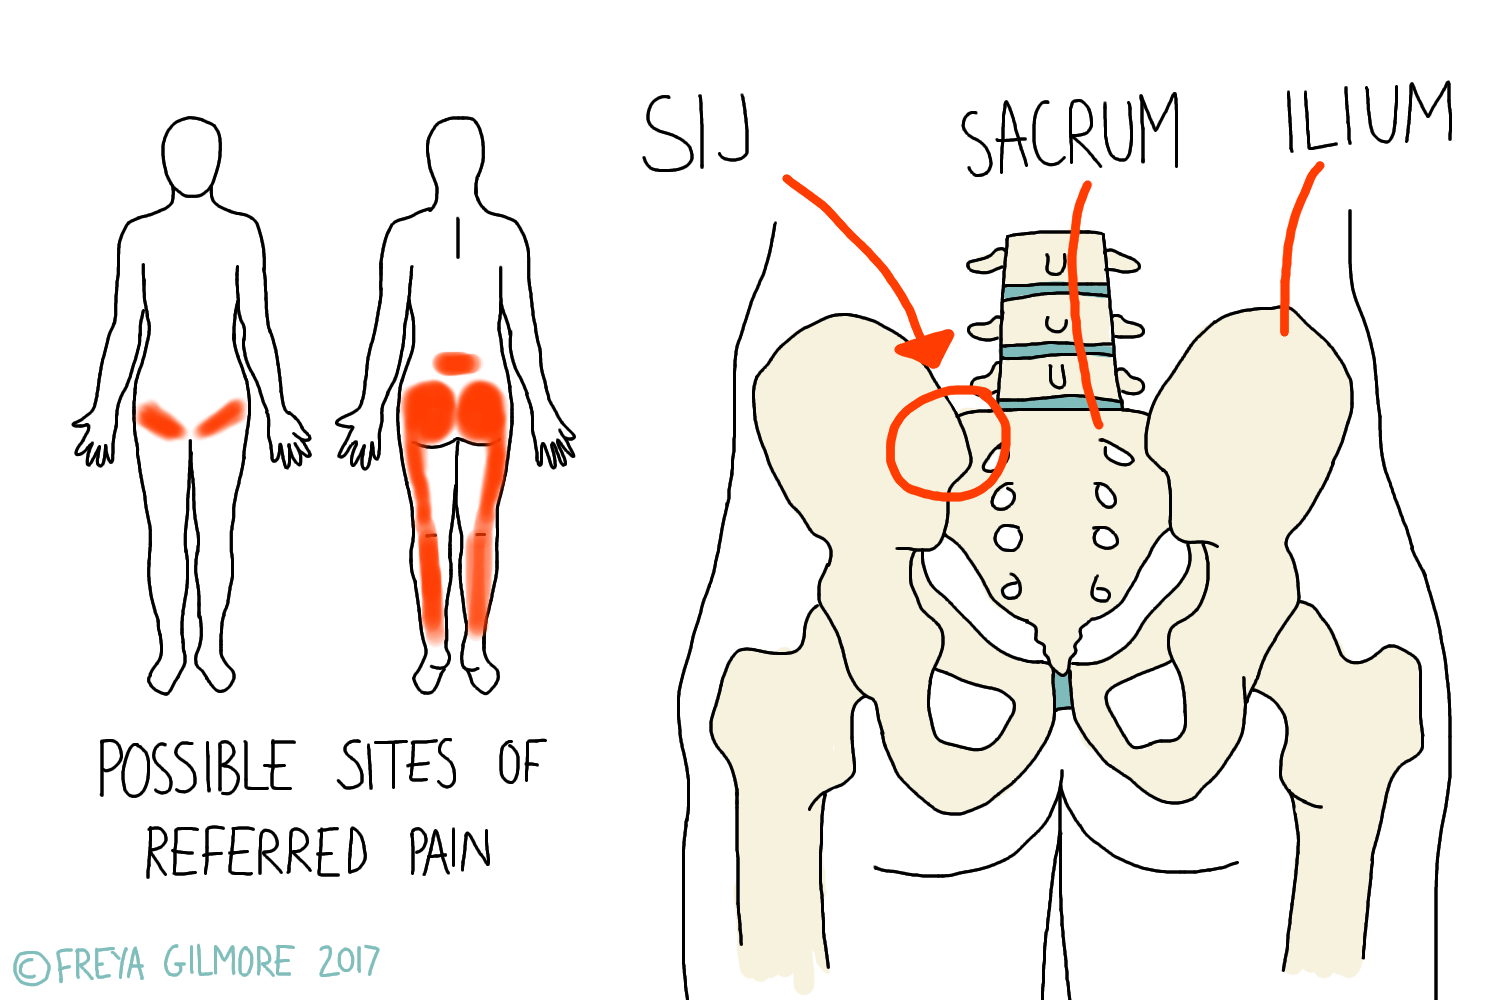 The Sacroiliac Joint (SIJ)